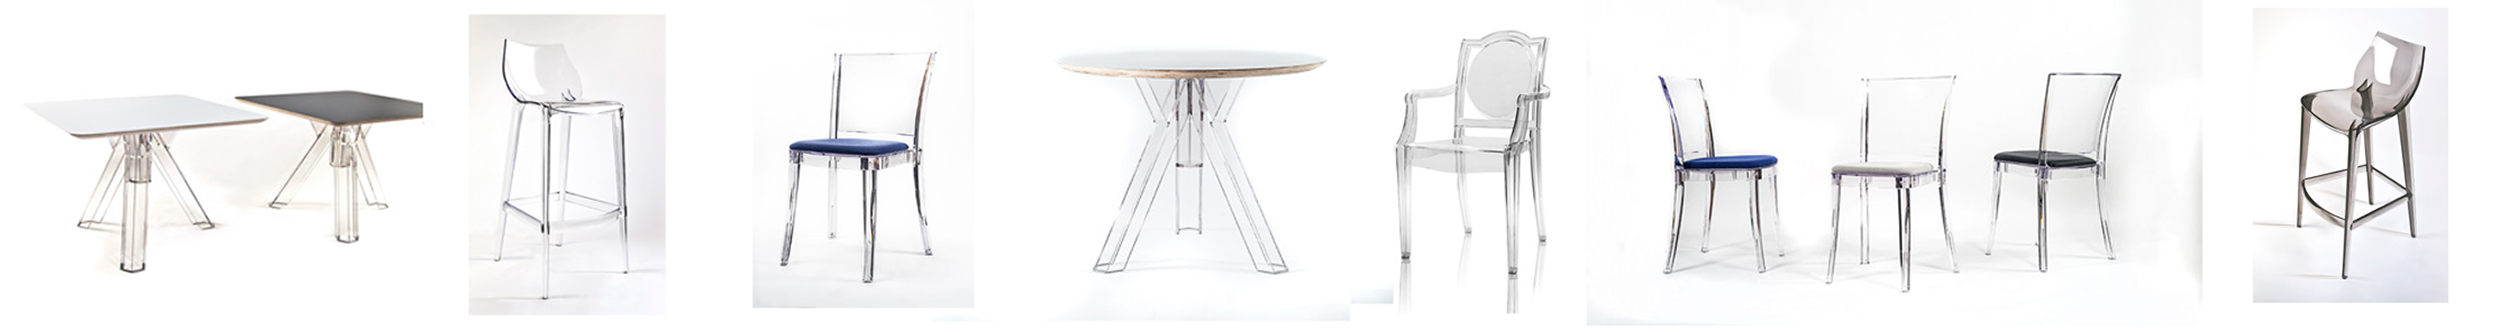 Bellelli Design - High Bar Tables